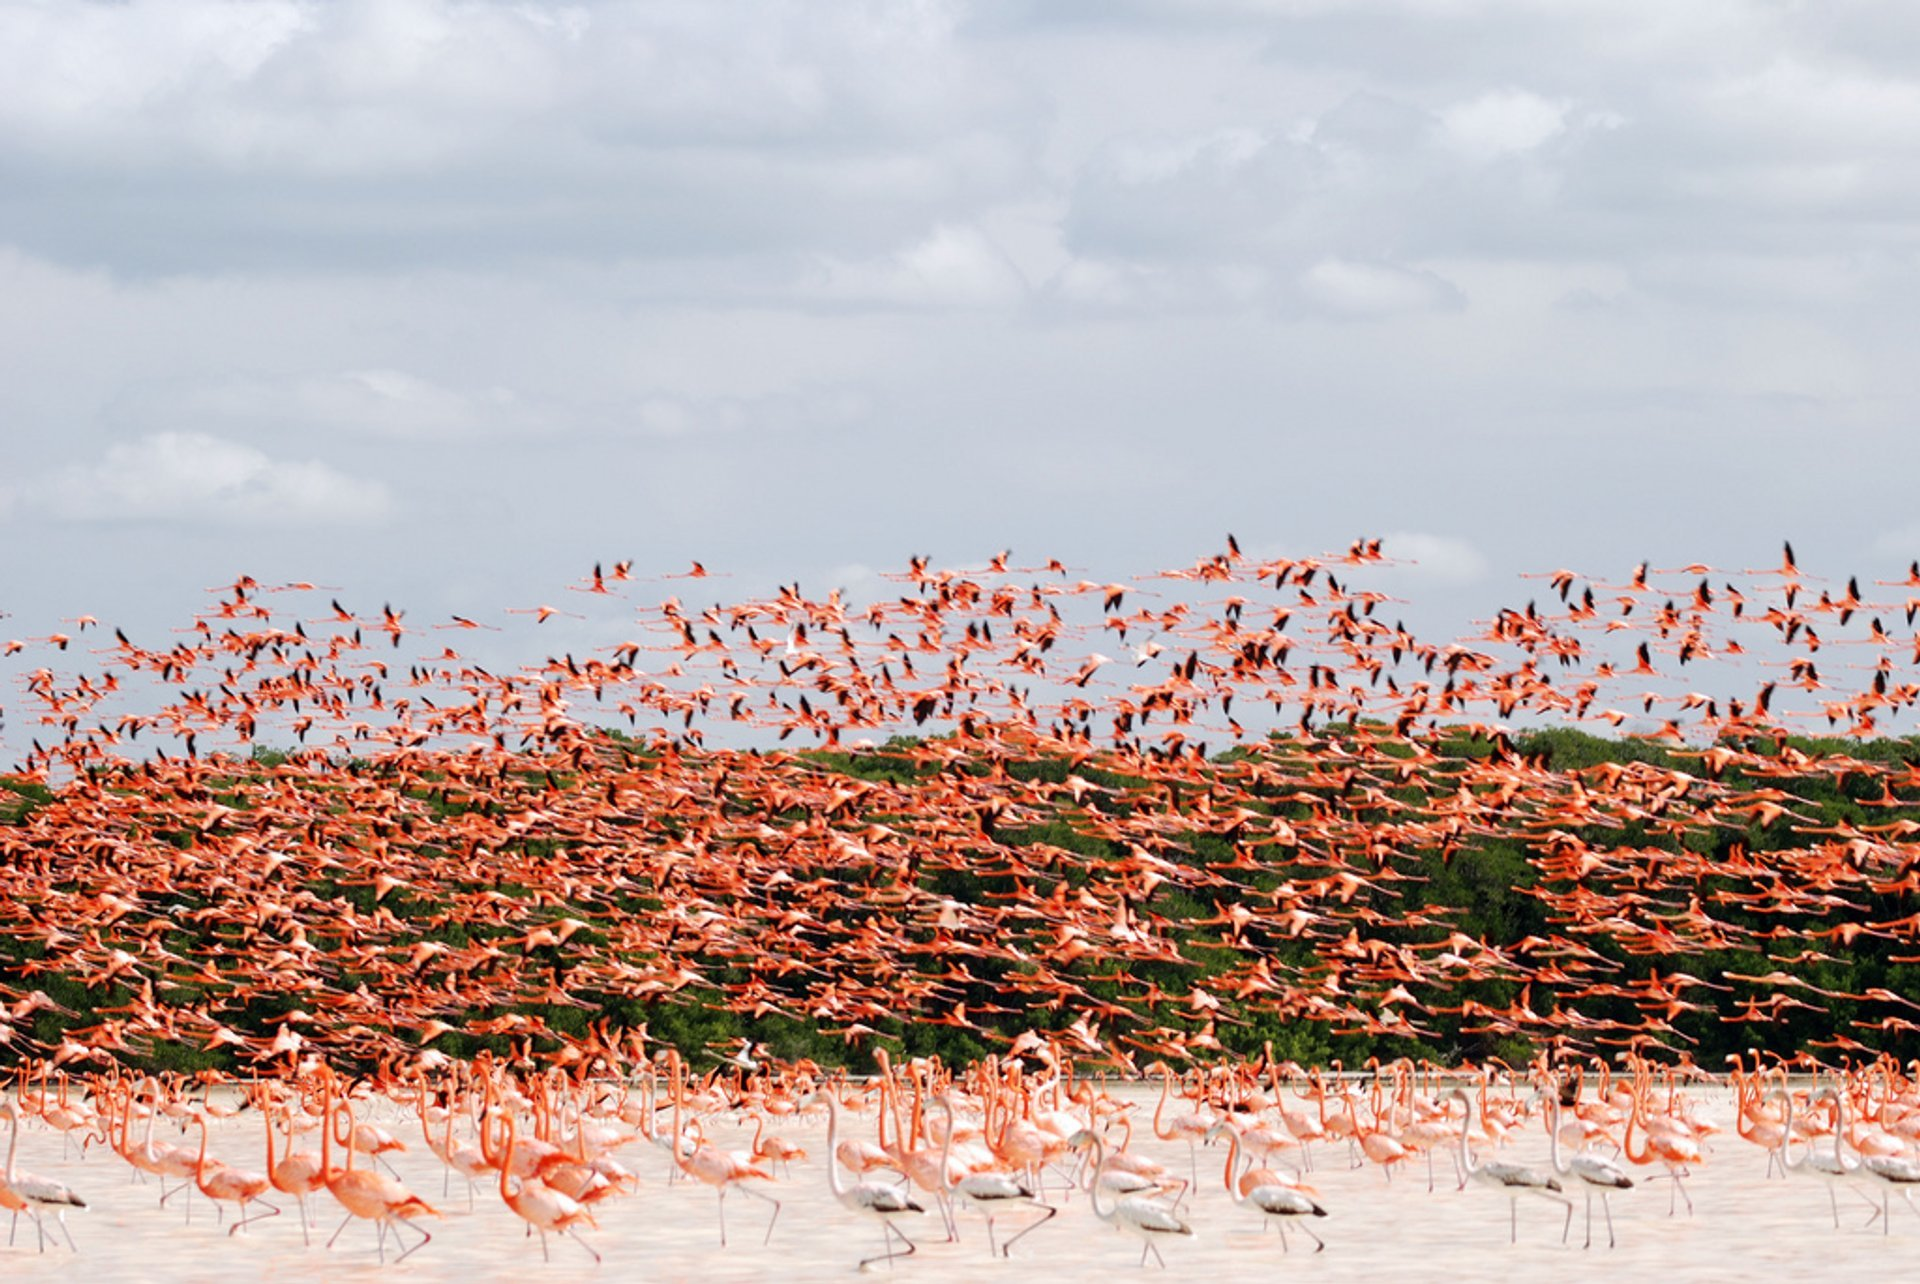 Flamingos of Isla de Arena 2020